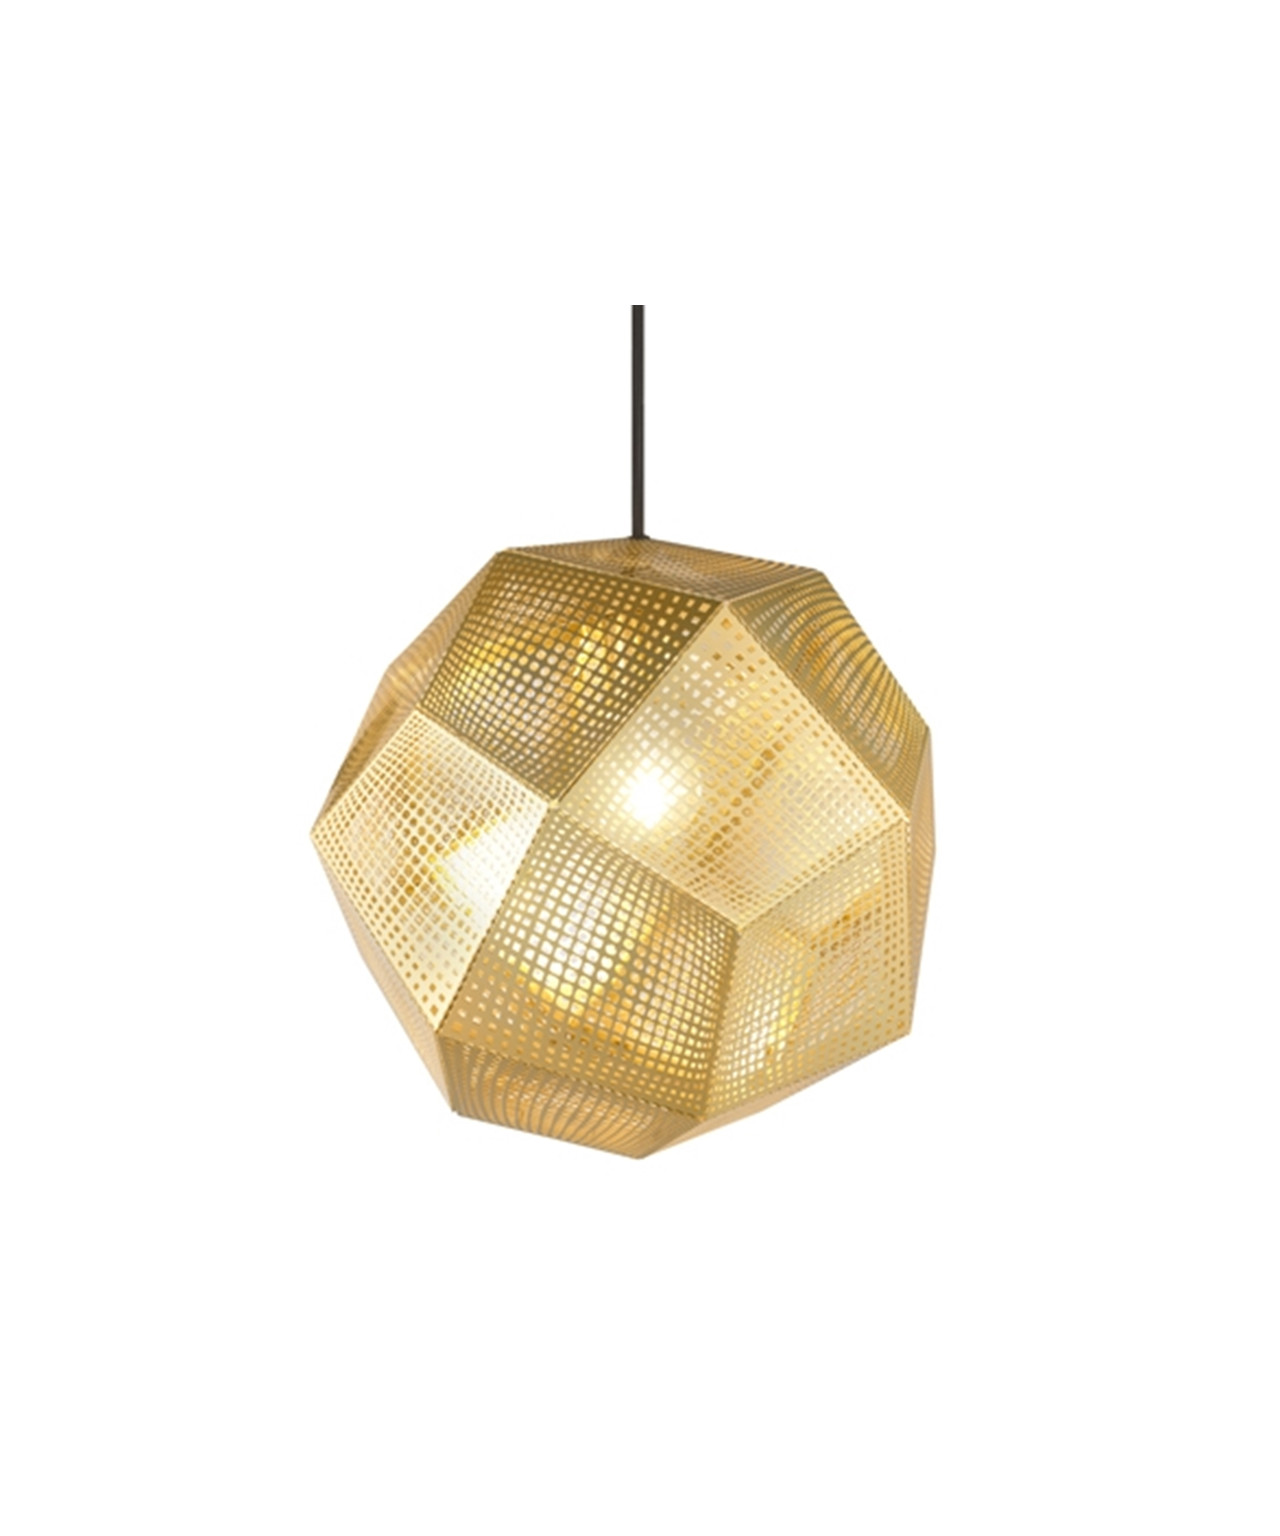 Image of   Etch Messing Pendel - Tom Dixon